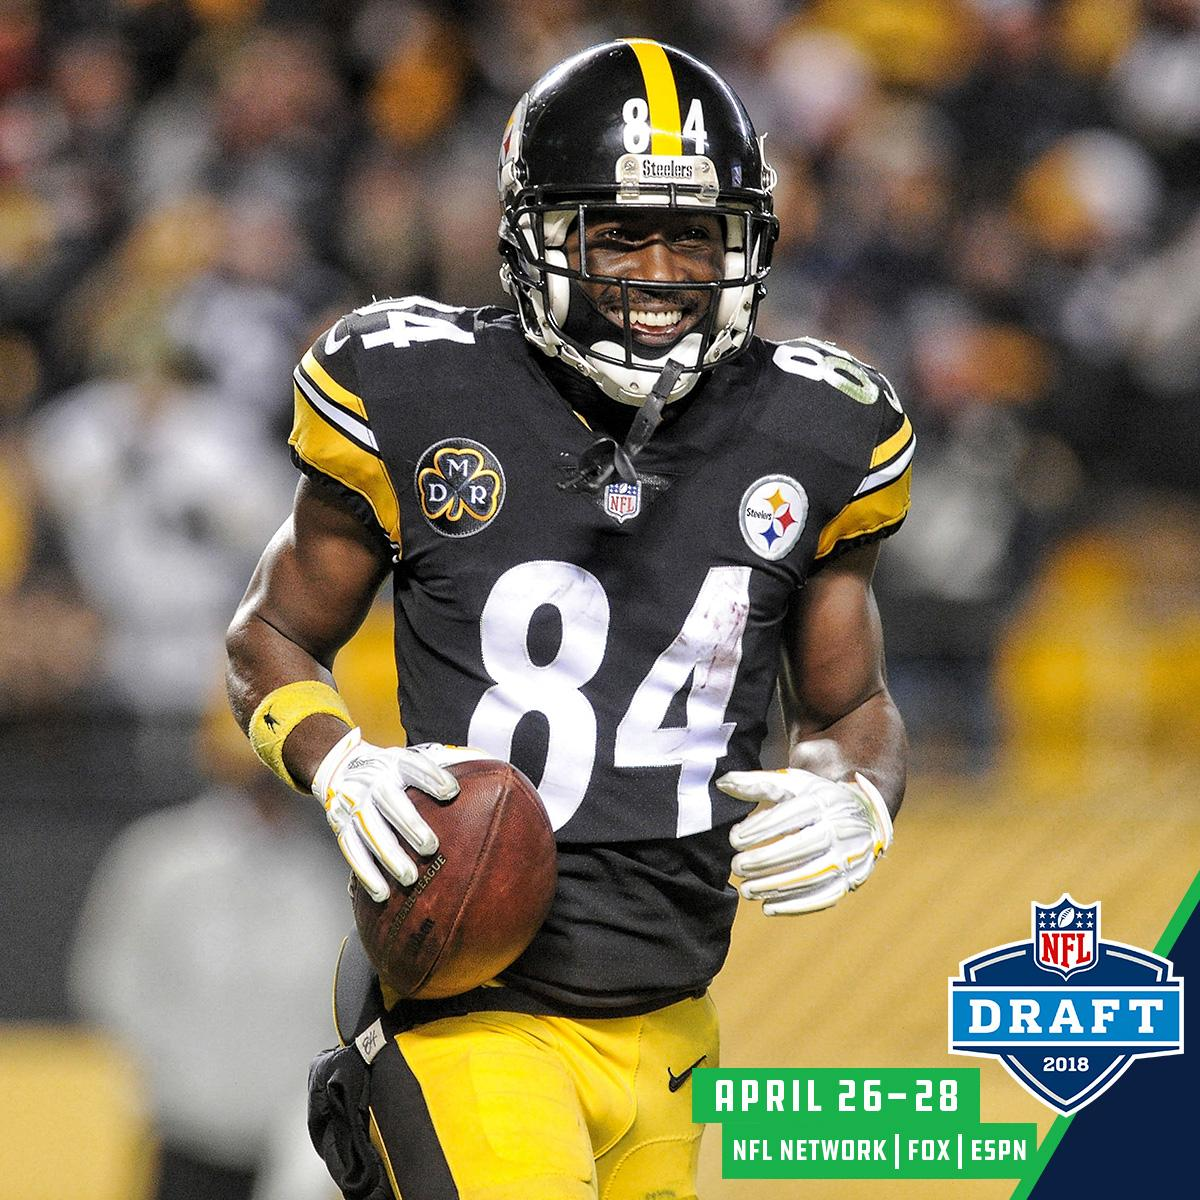 6th round. 195th overall.  Eight years ago today, the @steelers selected @AB84 in the @NFLDraft. https://t.co/y0mfVHnBfG